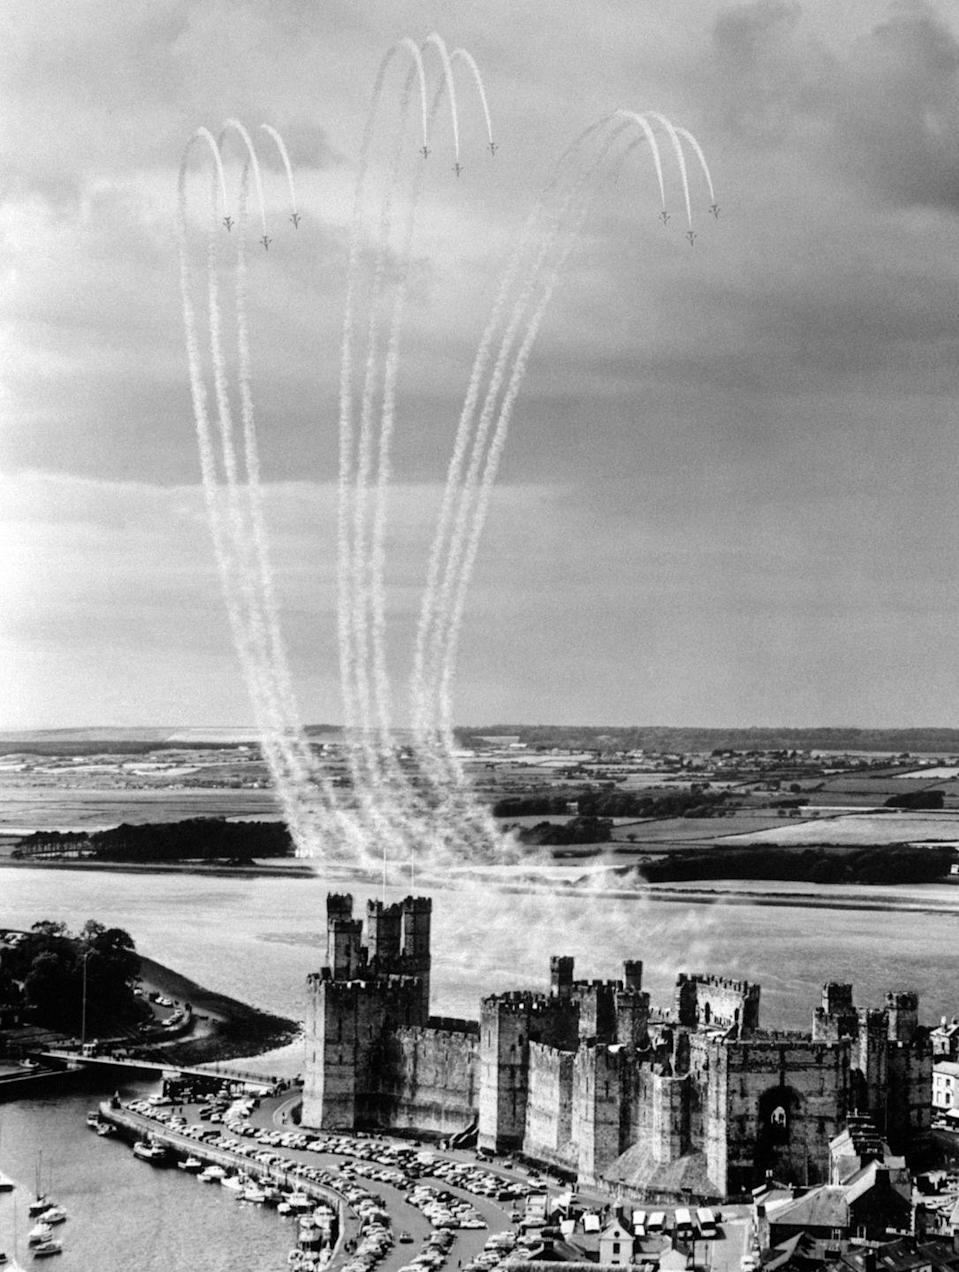 <p>On their wedding day, celebrations were seen throughout the United Kingdom. In Wales, the Royal Air Force performed a formation of the Prince of Wales Feathers over Caernarfon Castle. </p>